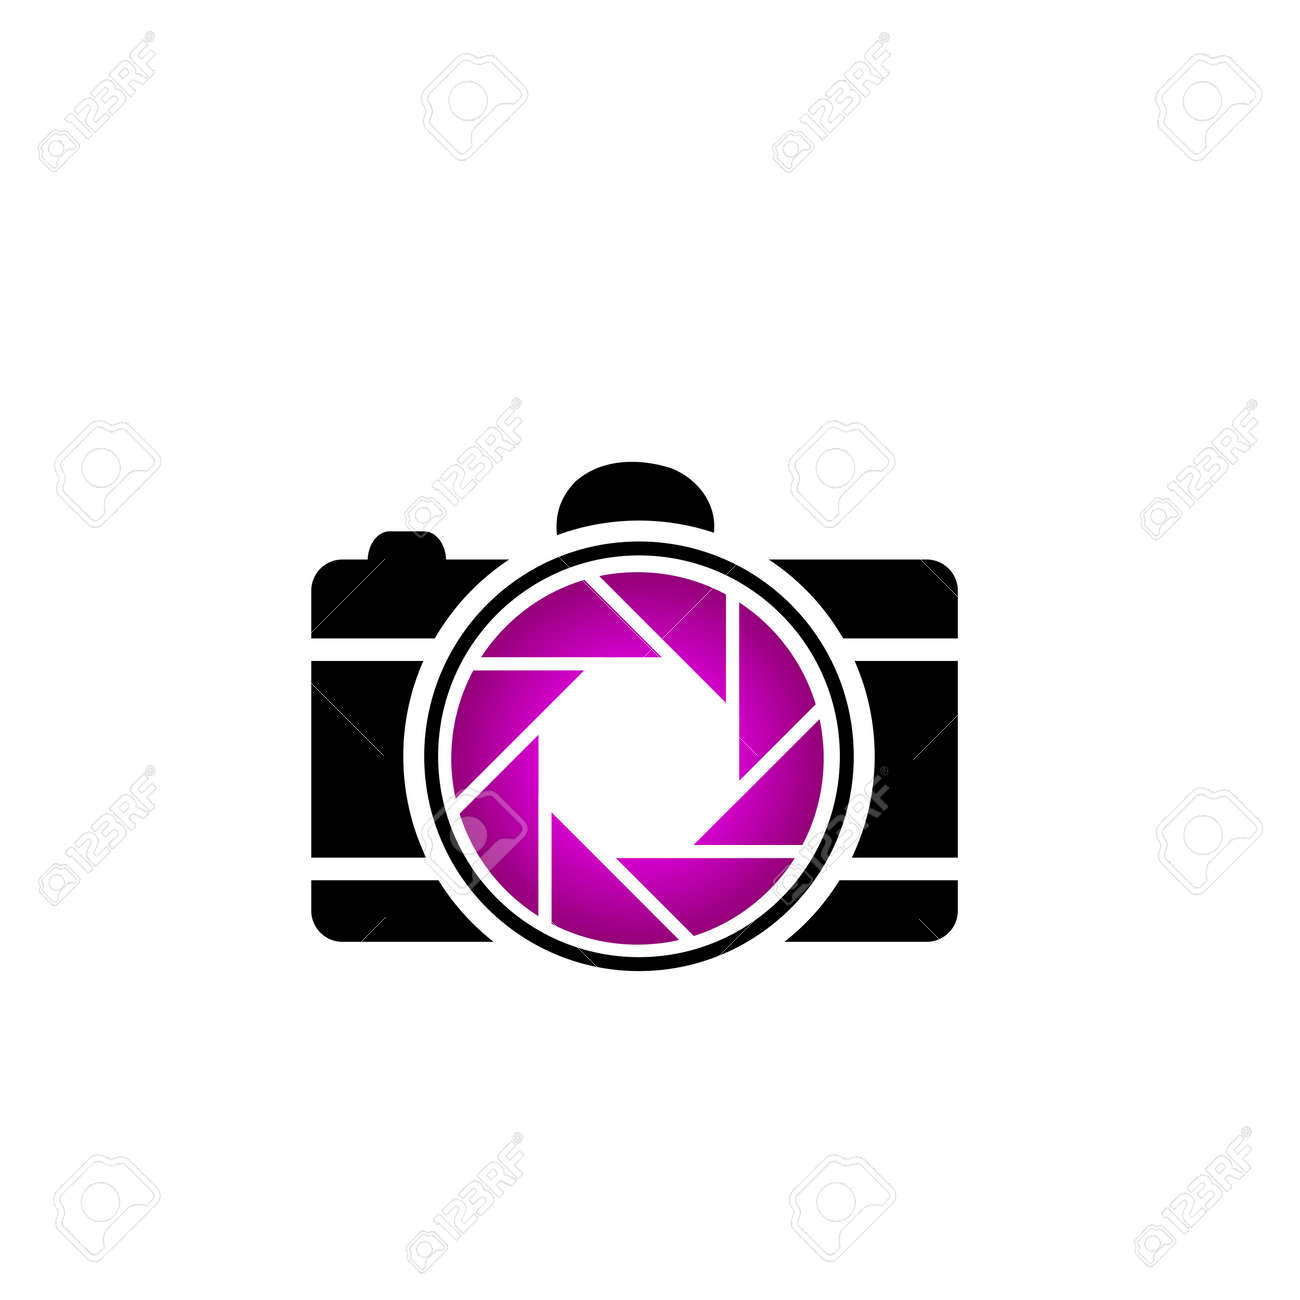 Photography Stock Vector - 17372682